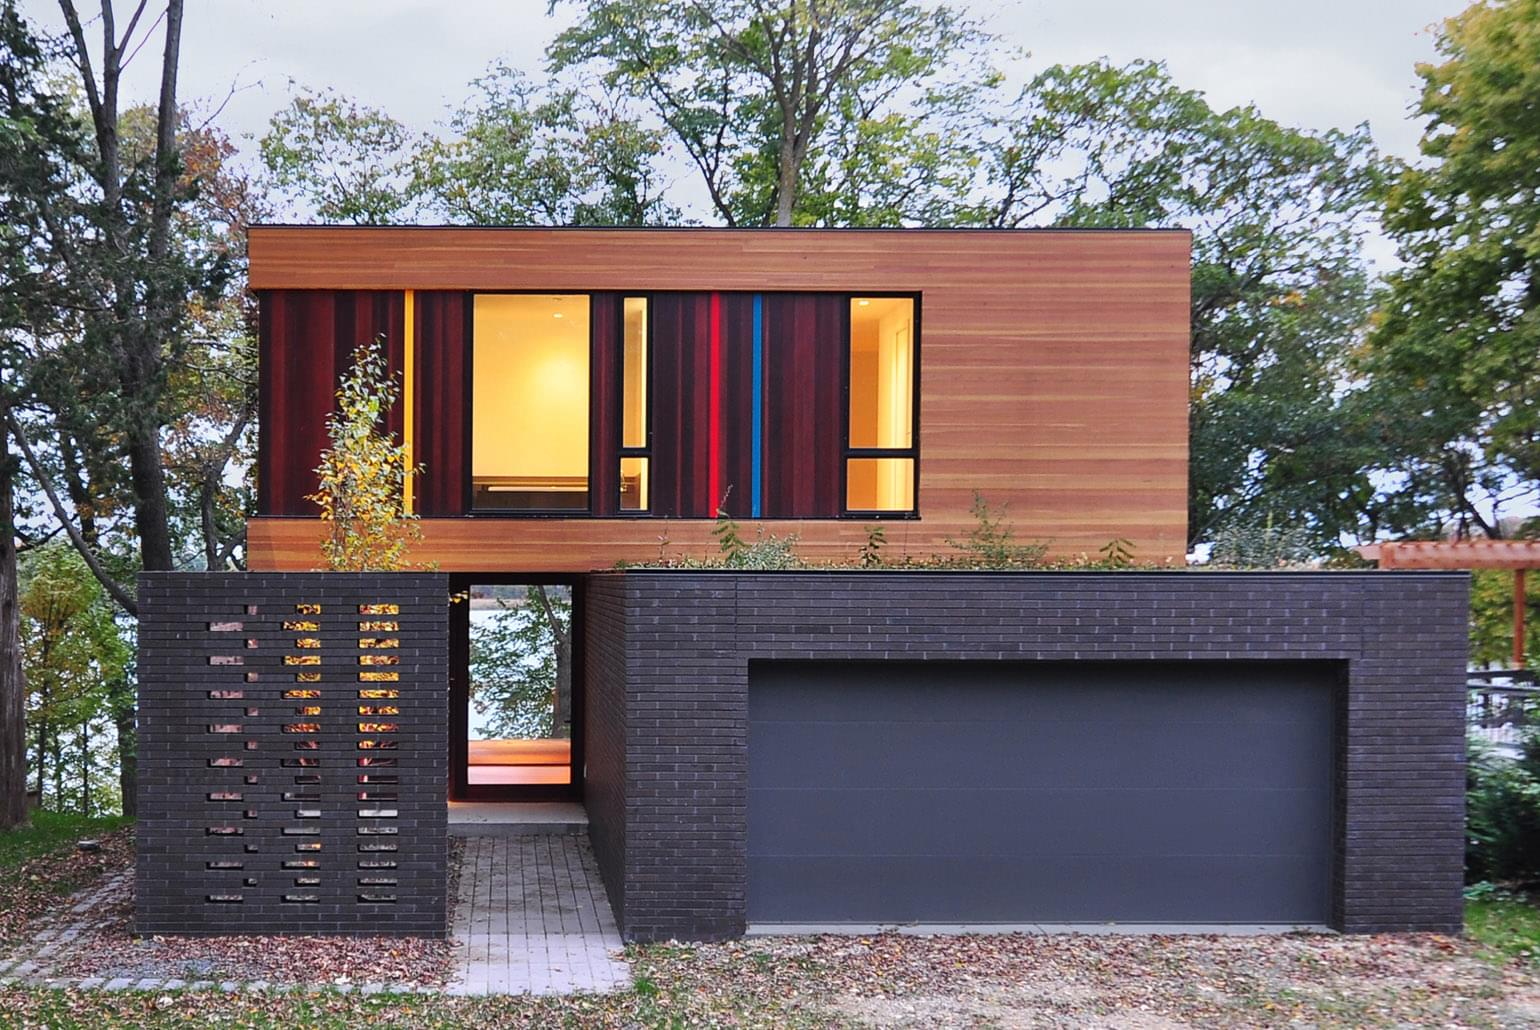 Aia small project practitioners fine homebuilding s 2014 for Fine homebuilding houses